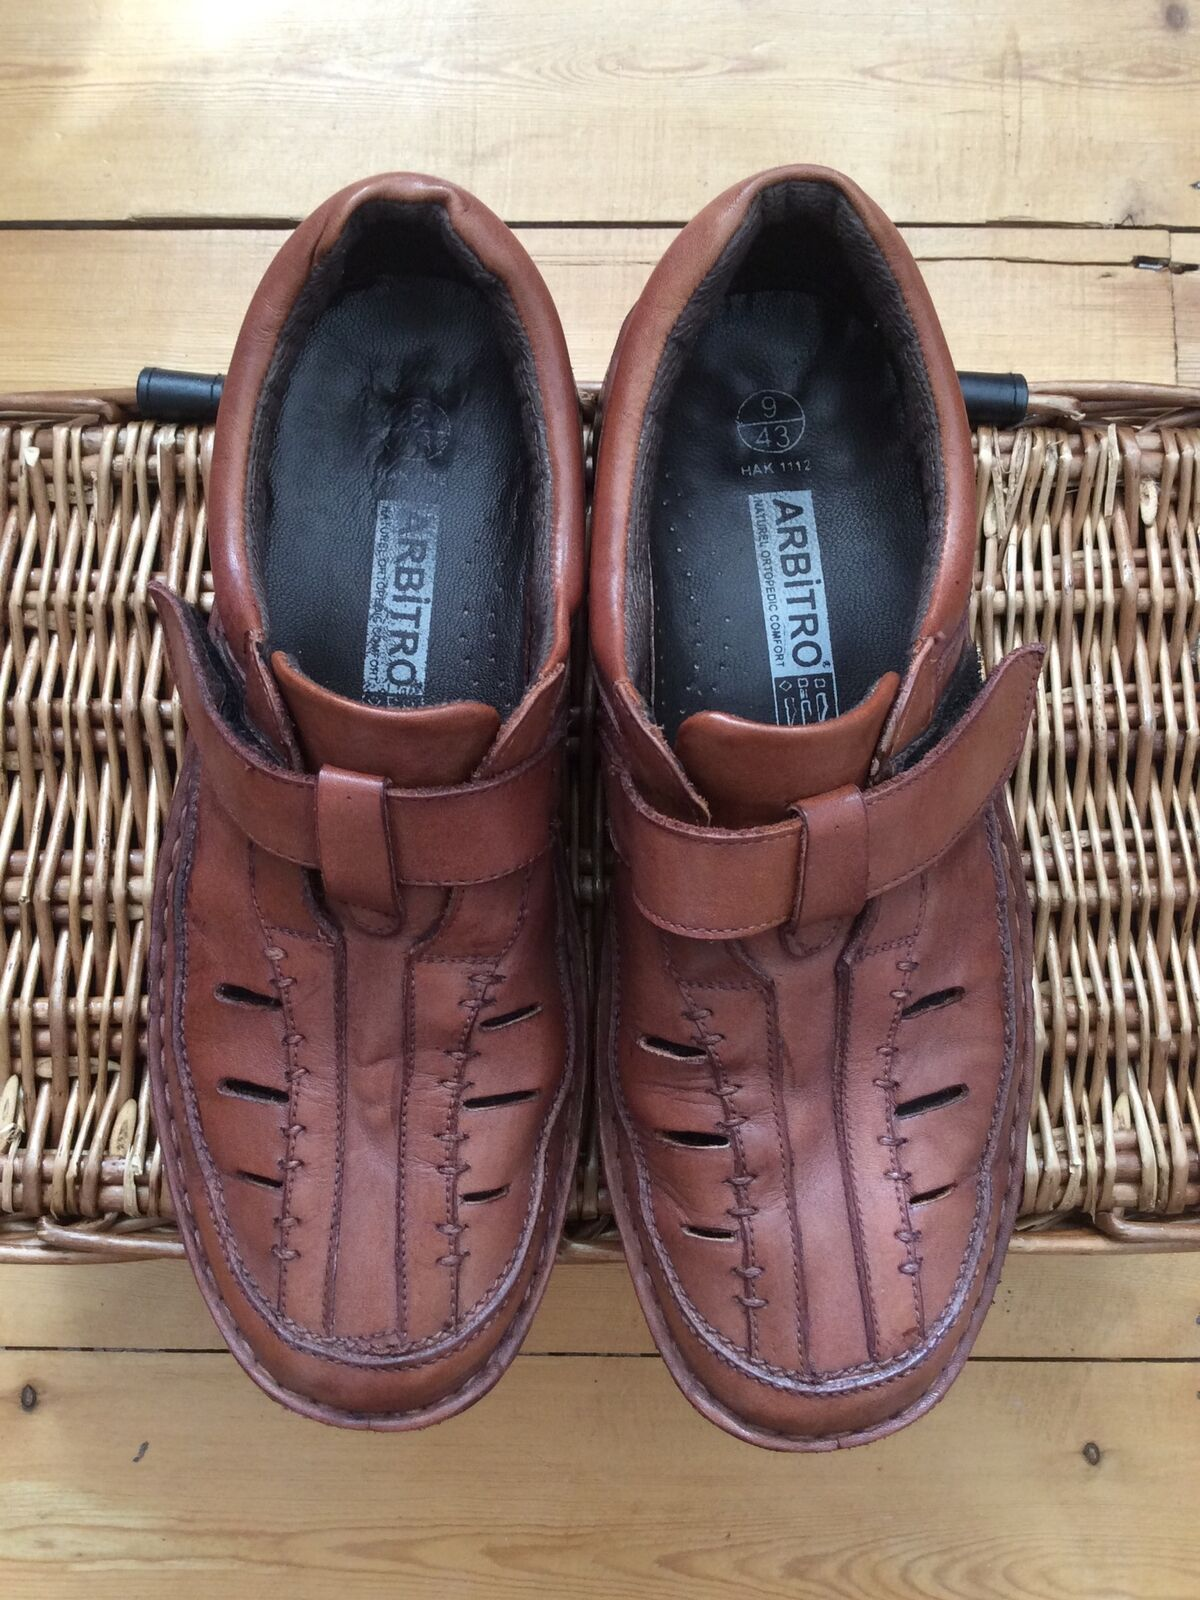 Mens Arbitro Orthopaedic Brown Uk 9 Shoe With Cut Outs